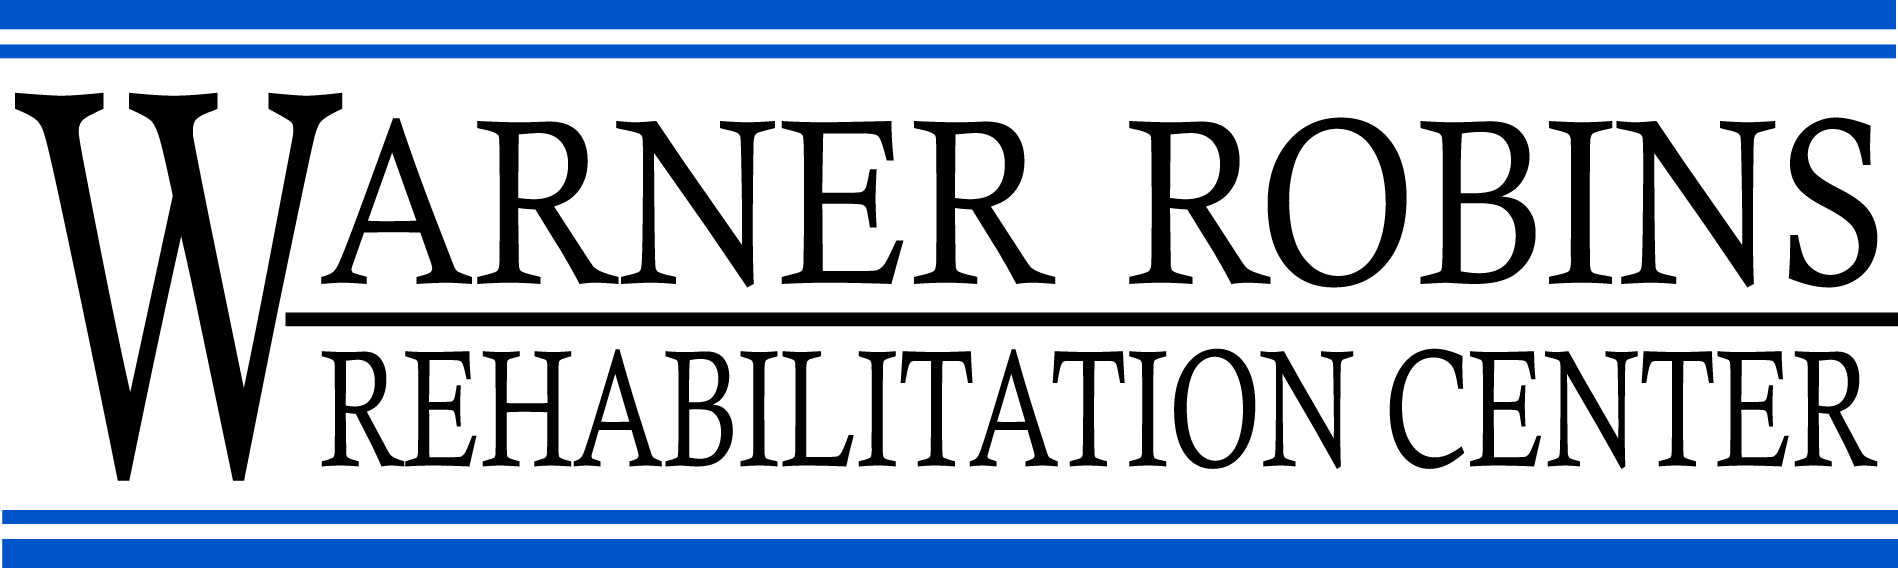 Warner Robins Rehabilitation Center